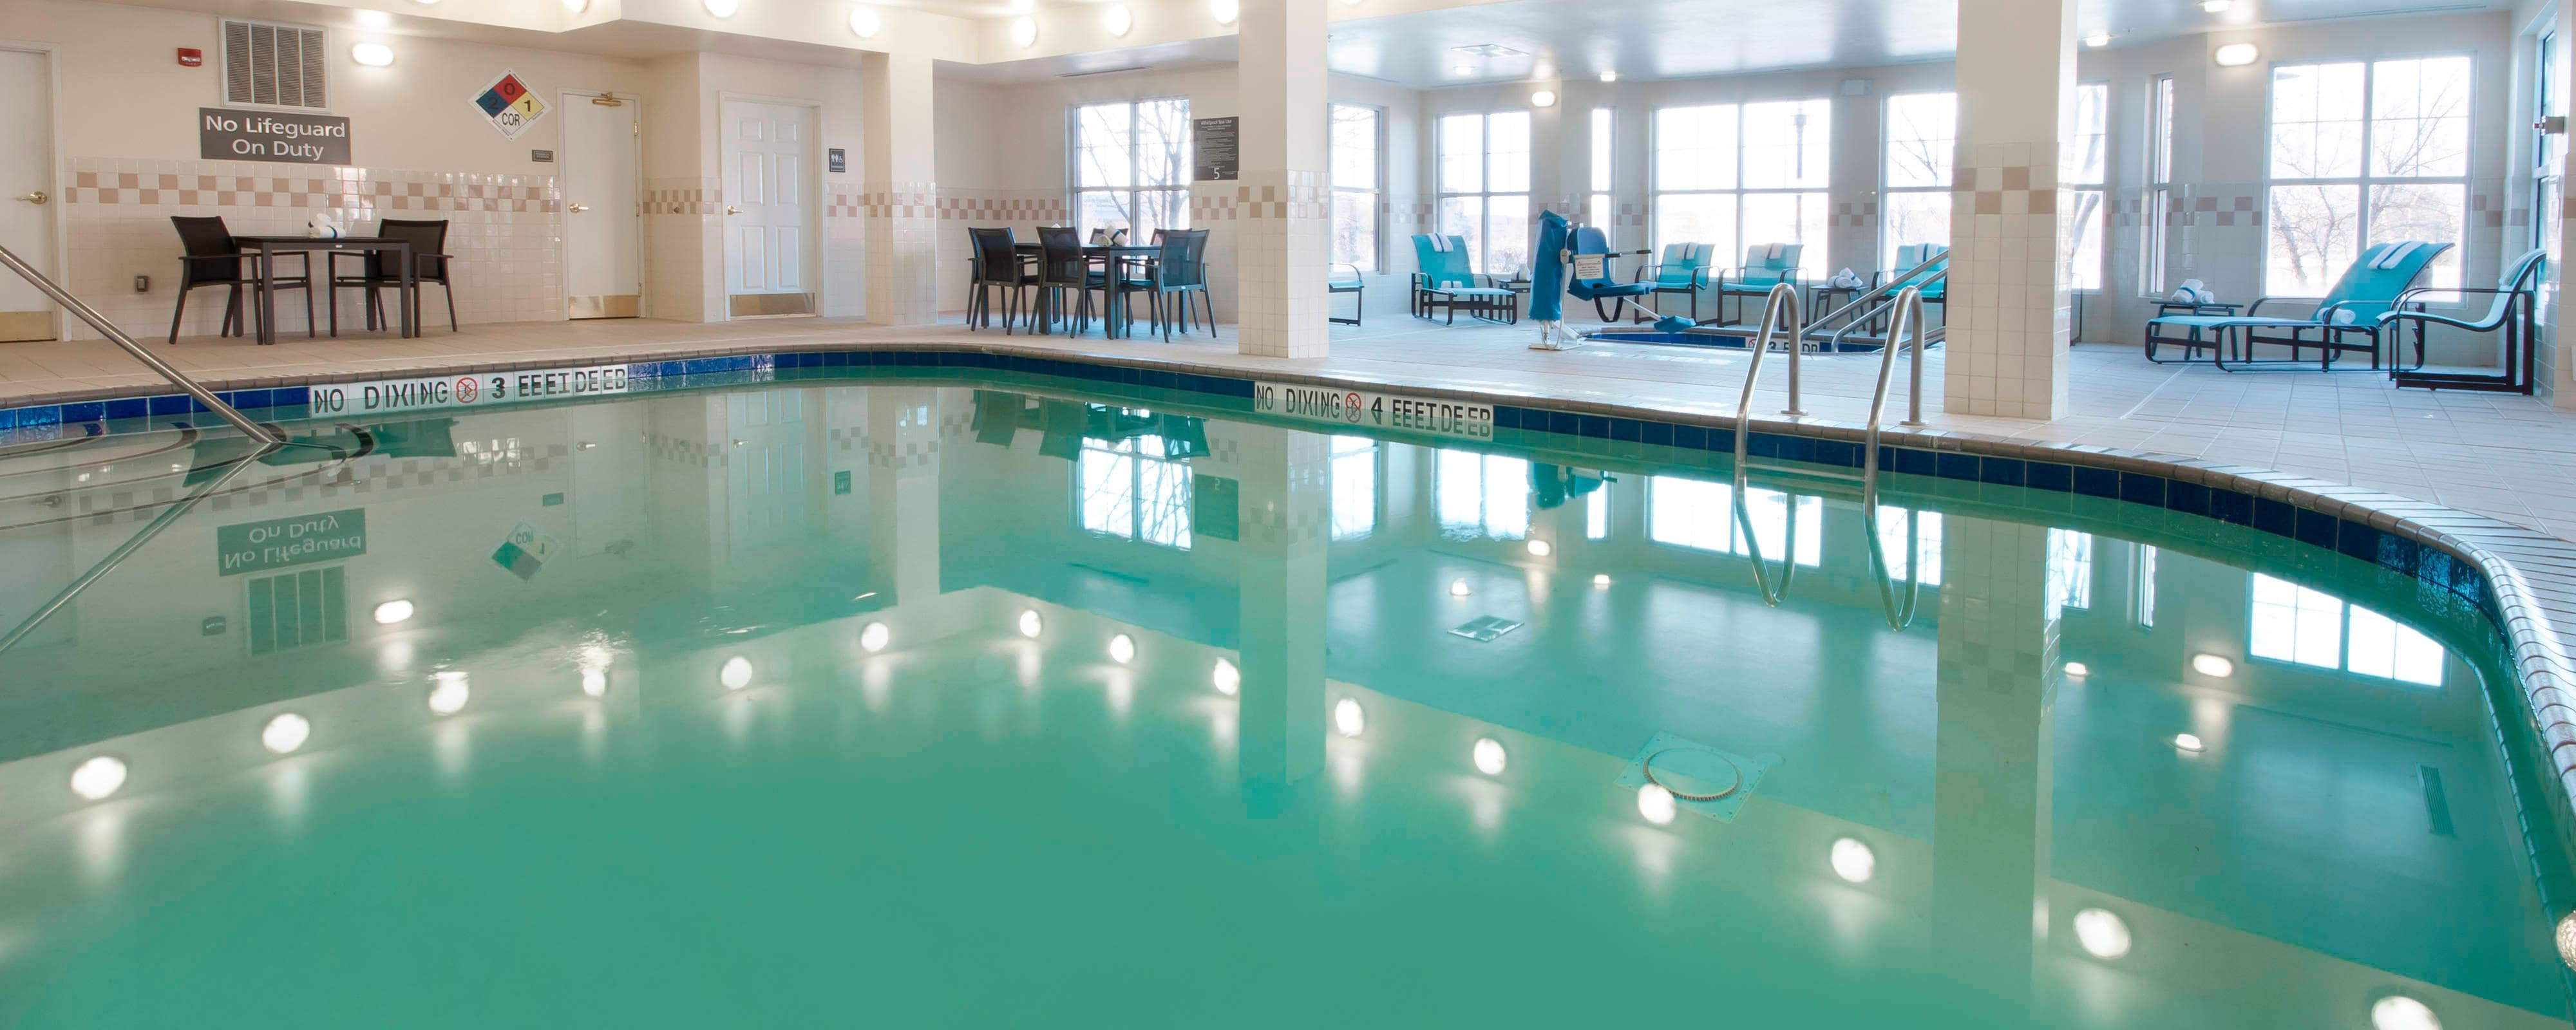 Des Moines Hotel Indoor Pool